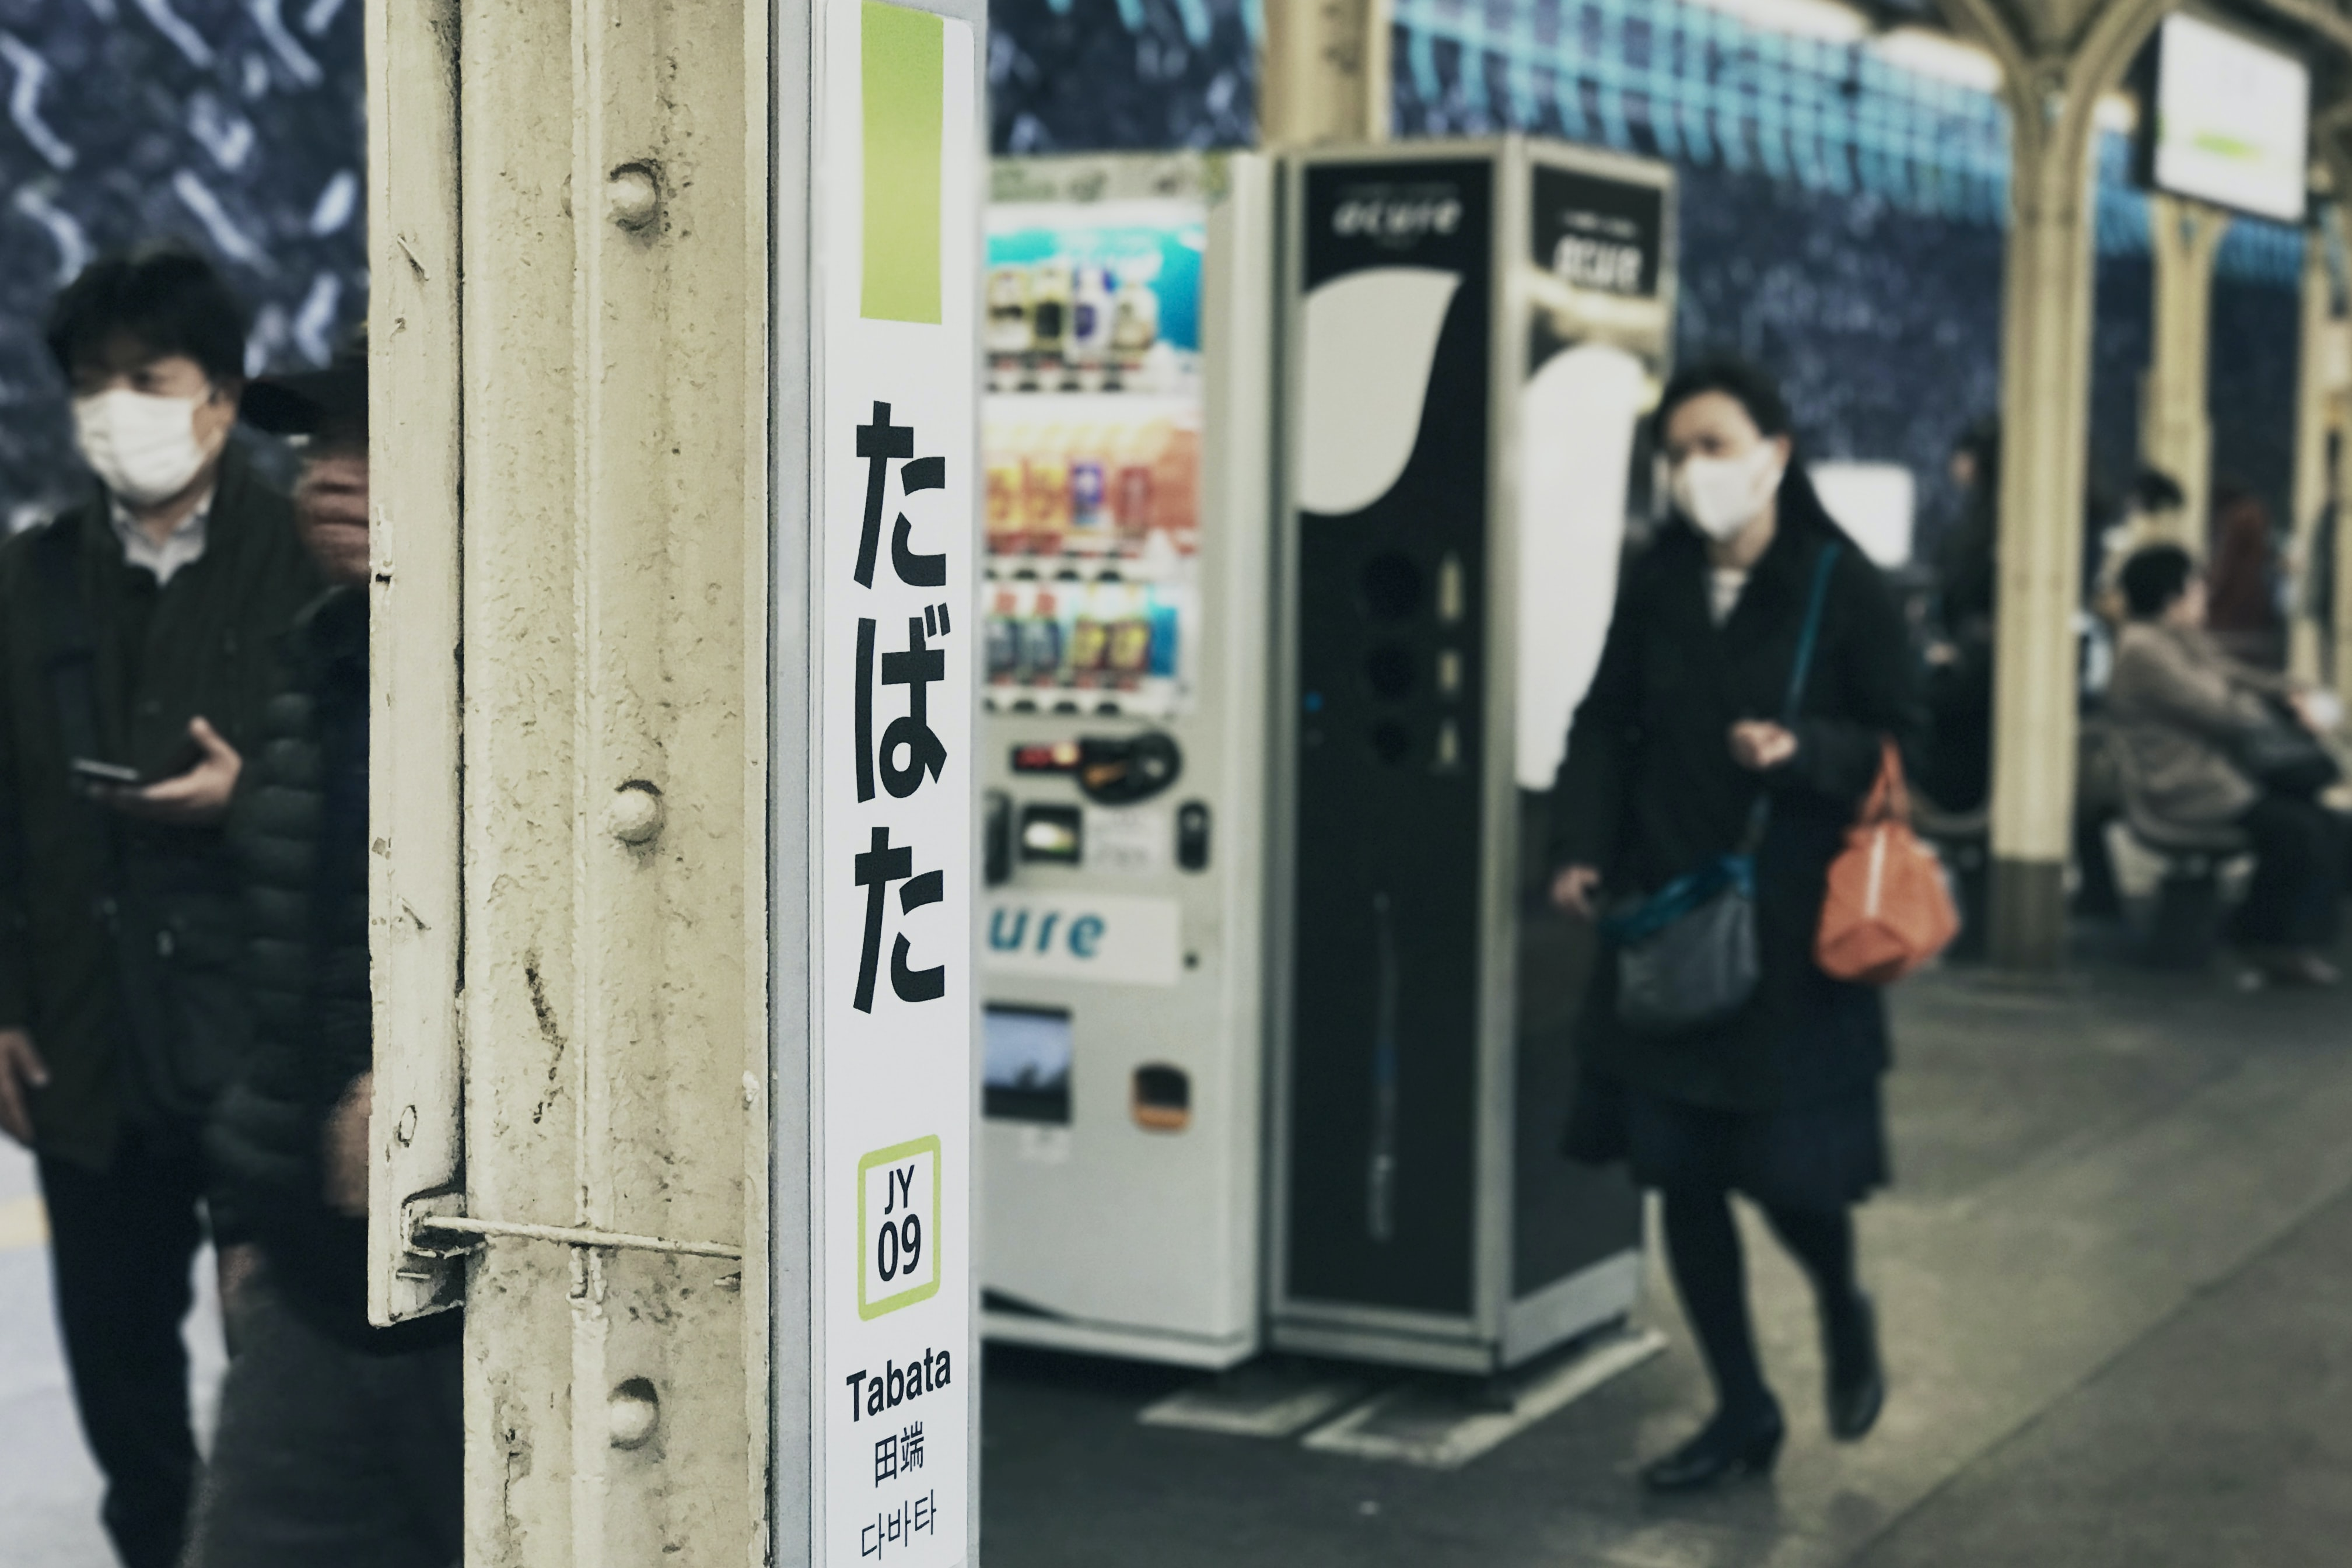 Tabata Station sign on a train station pillar beside a vending machine and Japanese public wearing mouth masks